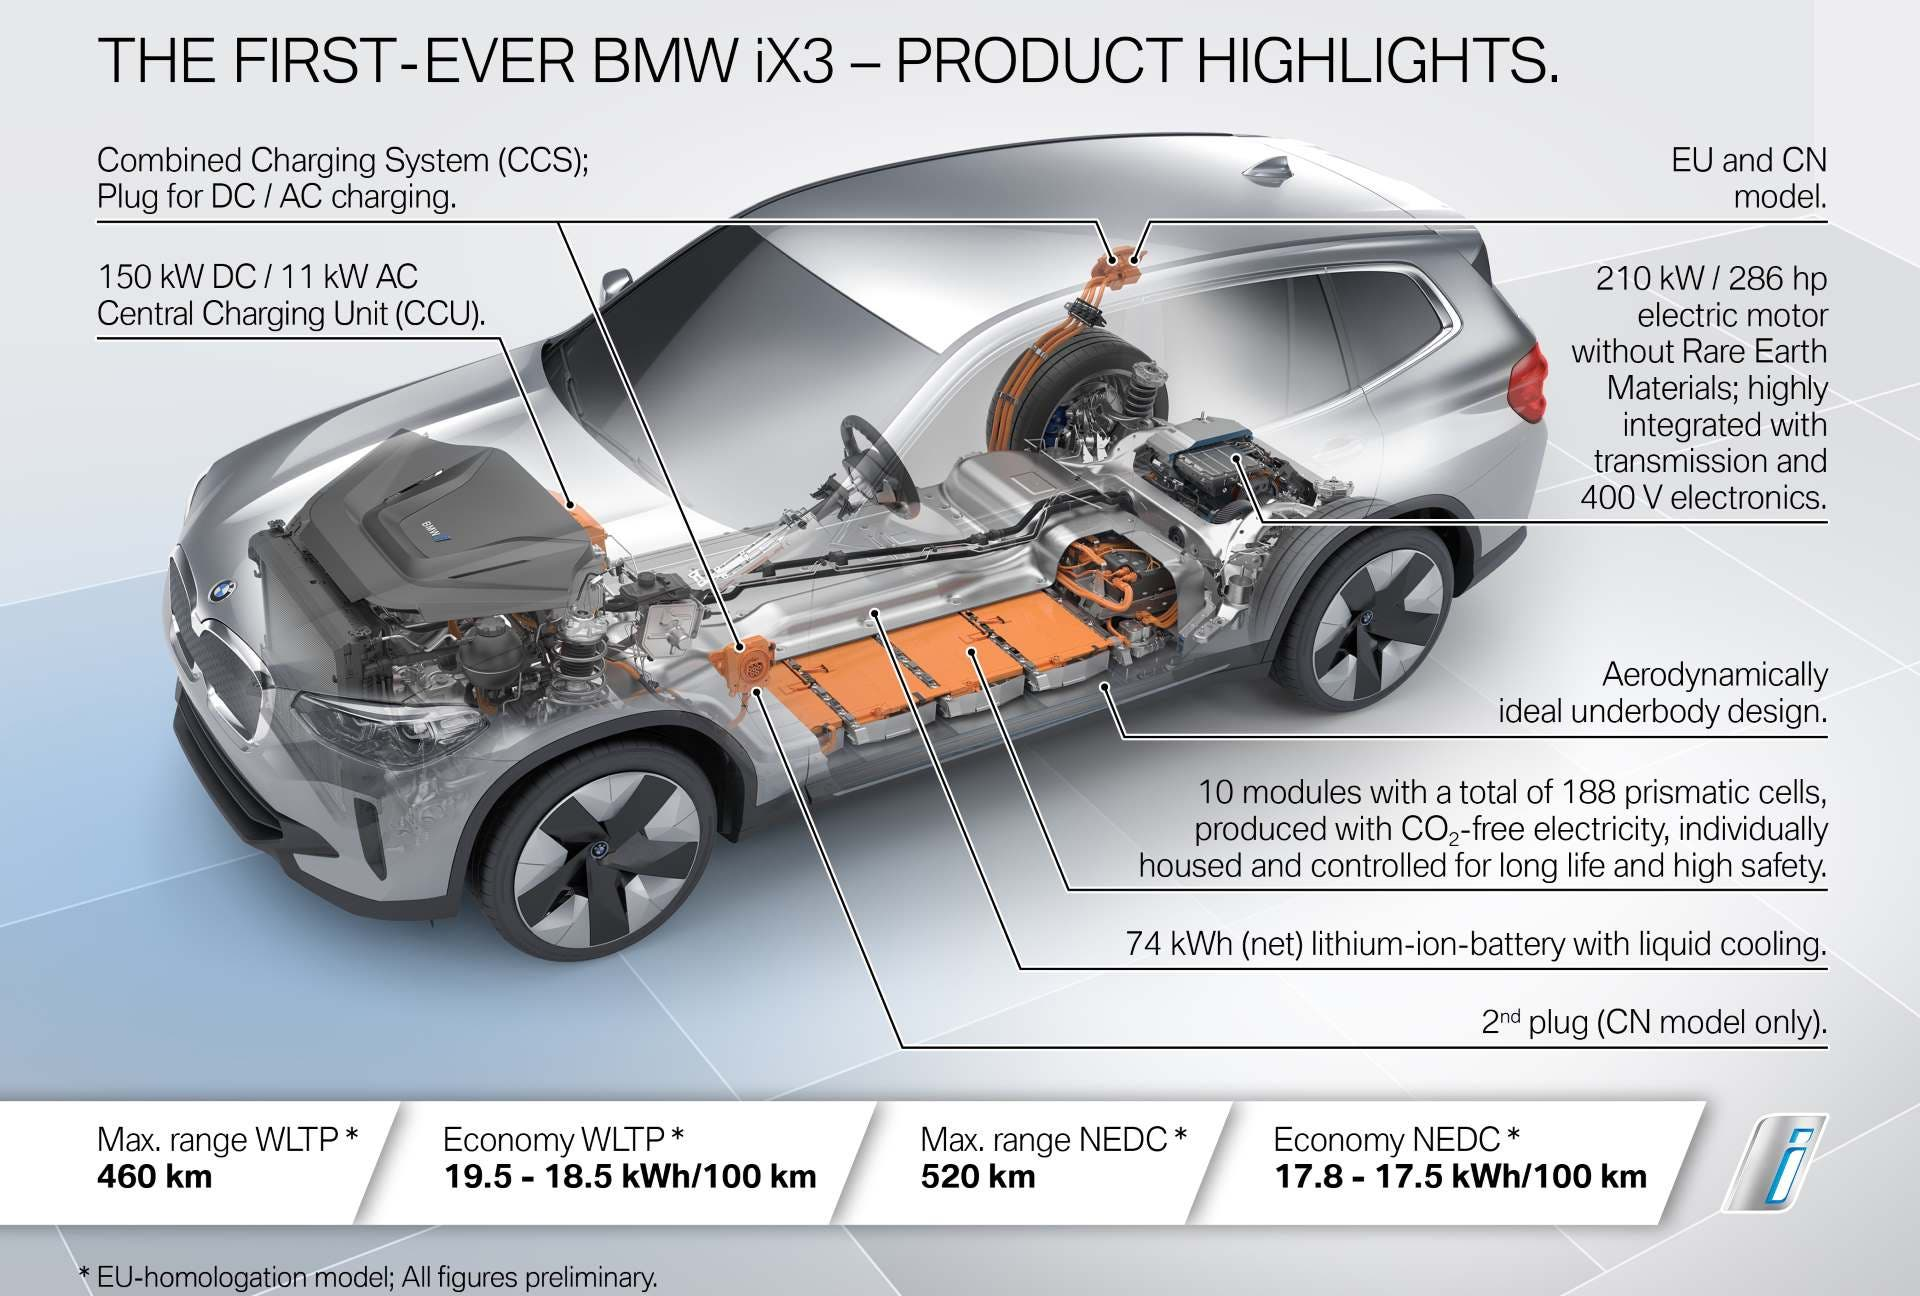 BMW Claims iX3 Beats Audi e-tron On Range, But What's The Price & Availability?